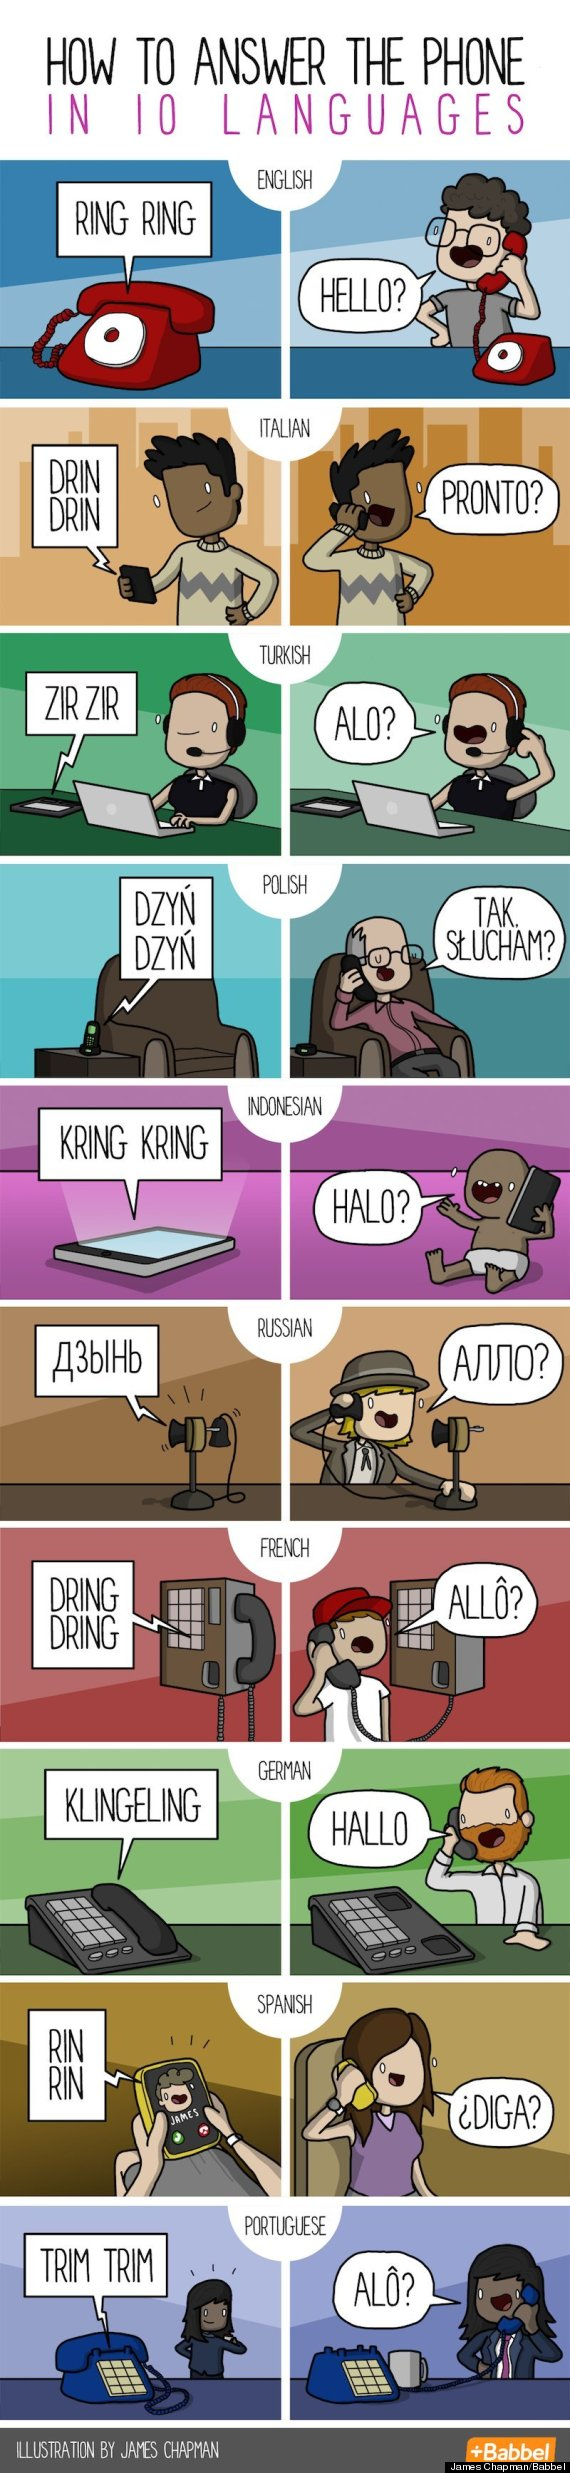 Photo of How To Answer The Phone In 10 Different Languages